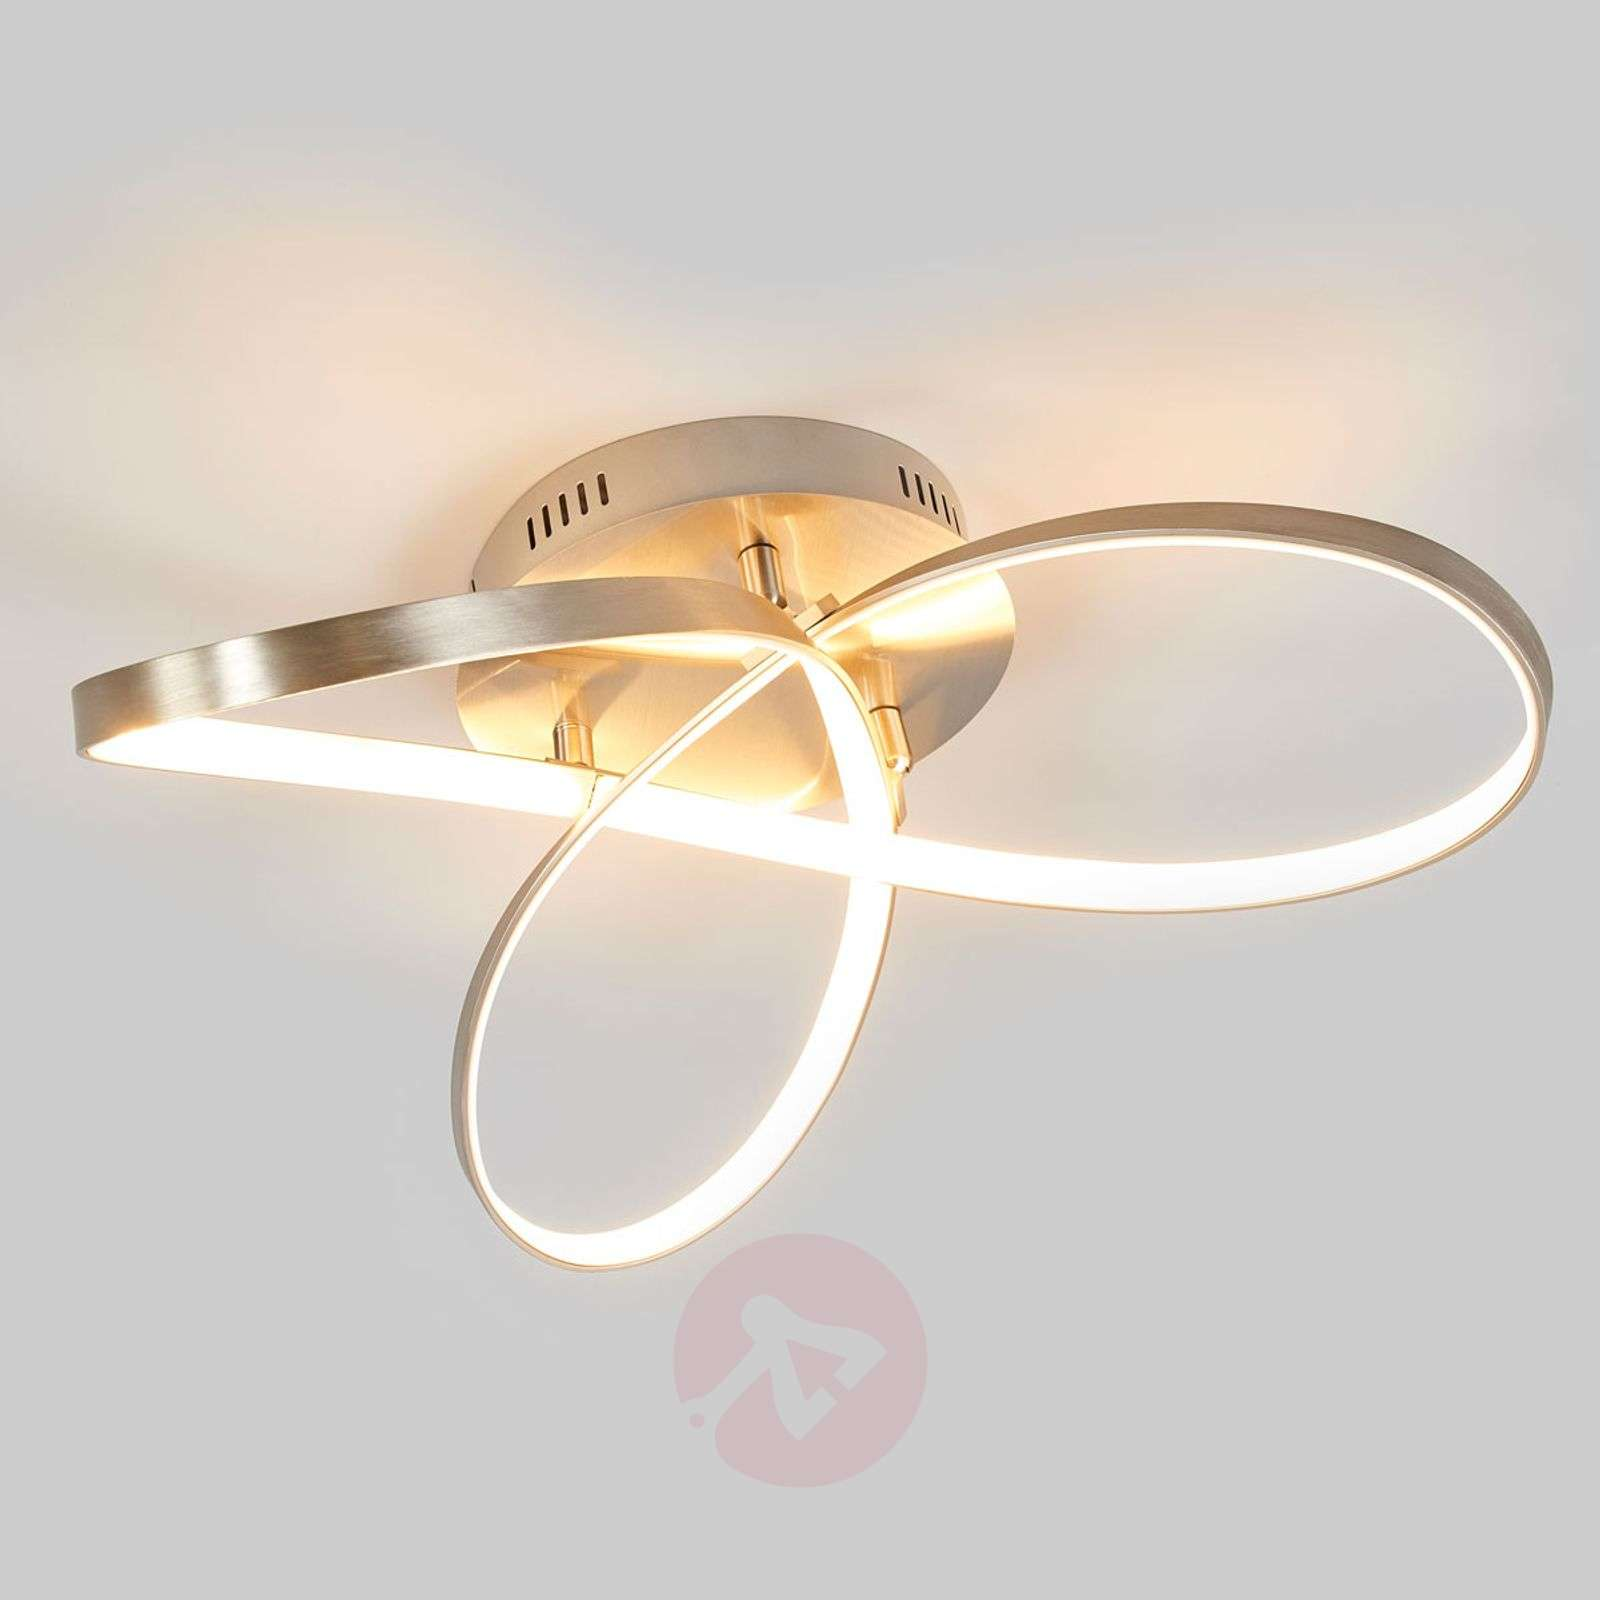 Saliha modern LED ceiling lamp-9985071-02